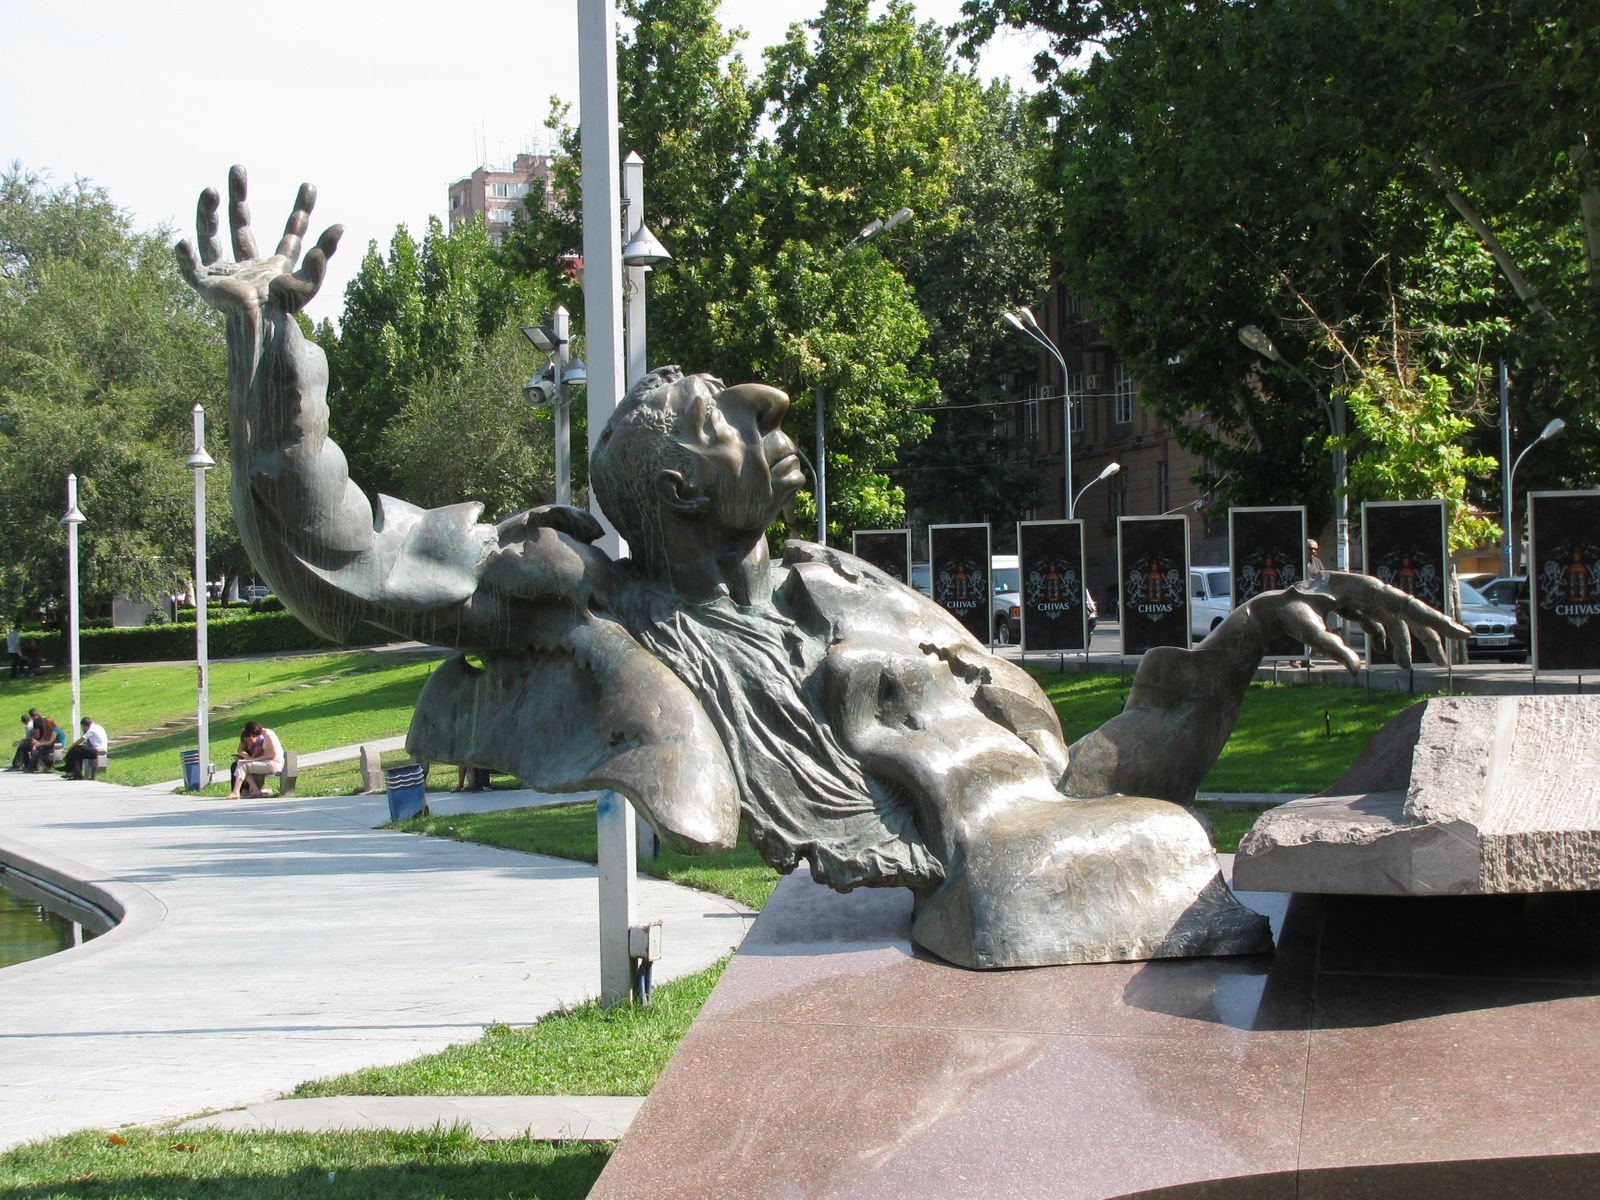 Statue in Yerevan, Armenia